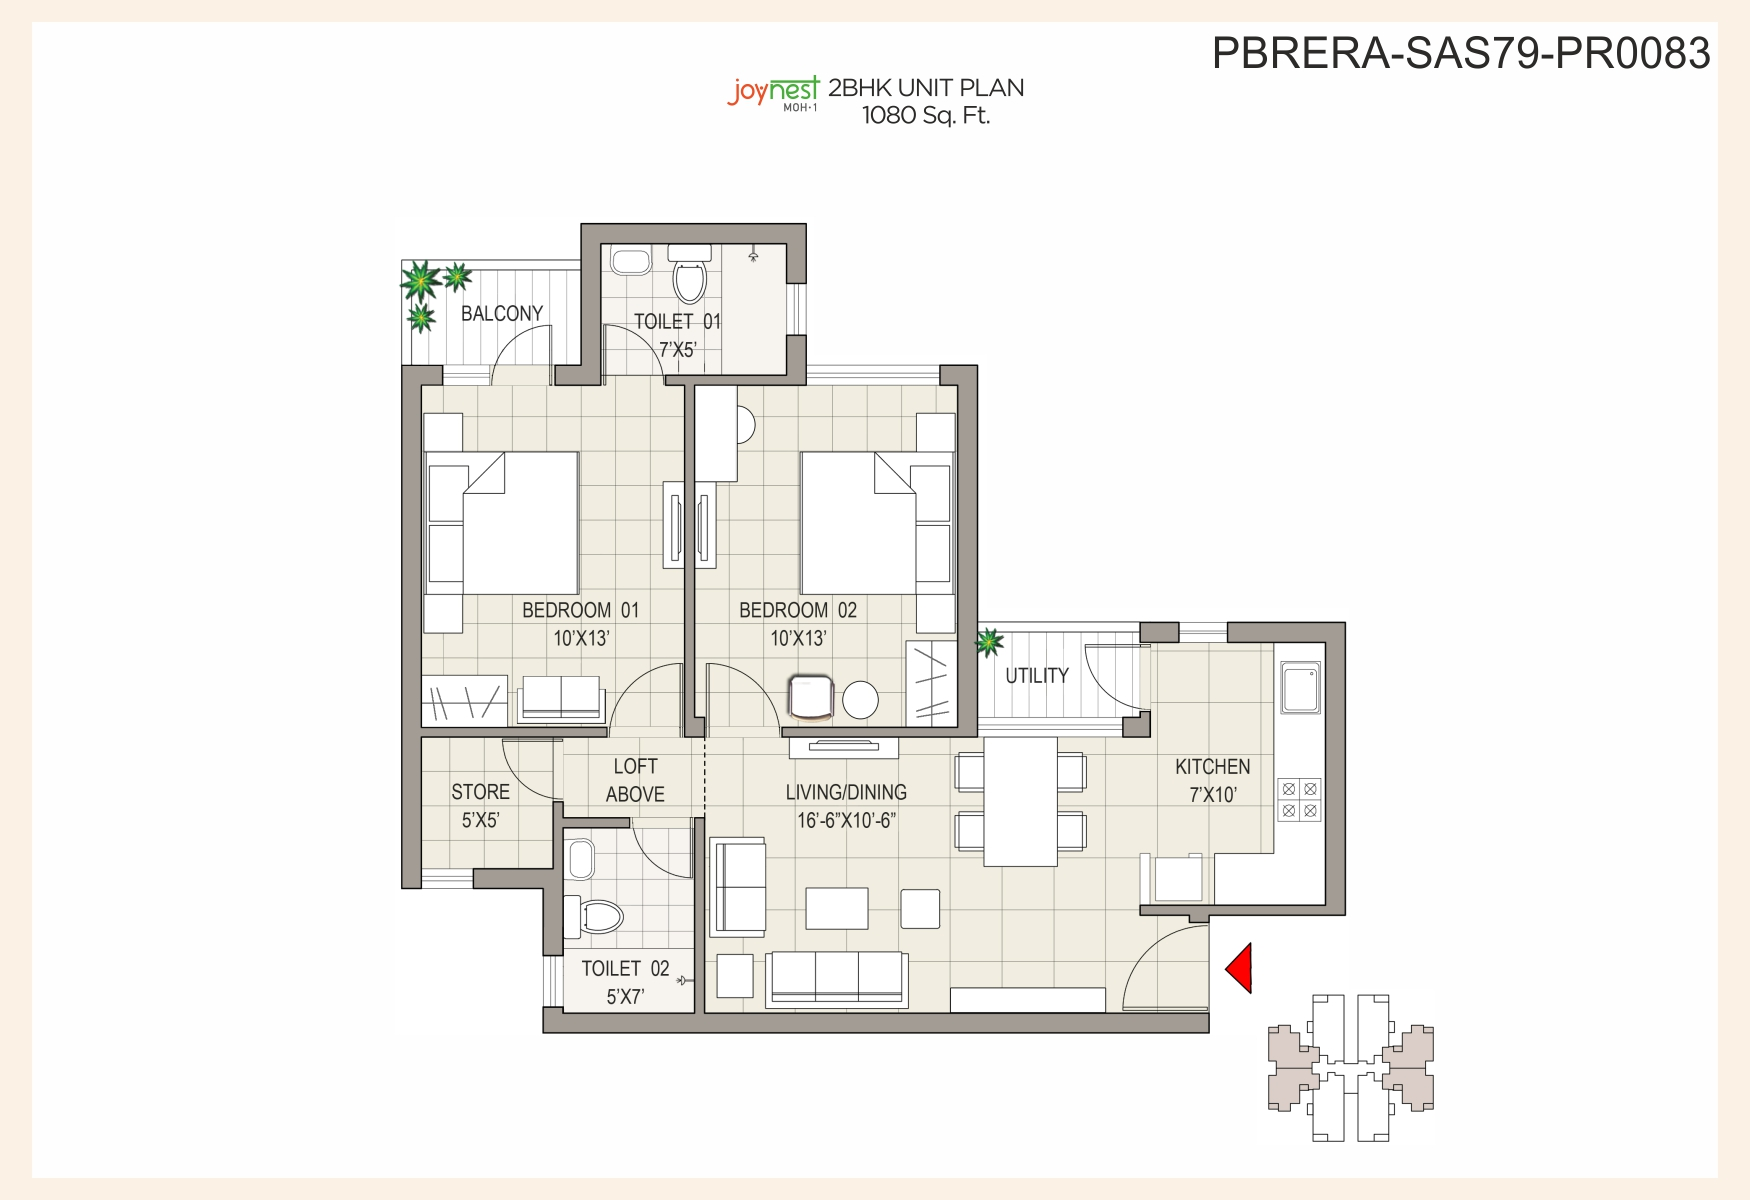 Unit Plan - 2BHK - 1080 sq. ft.